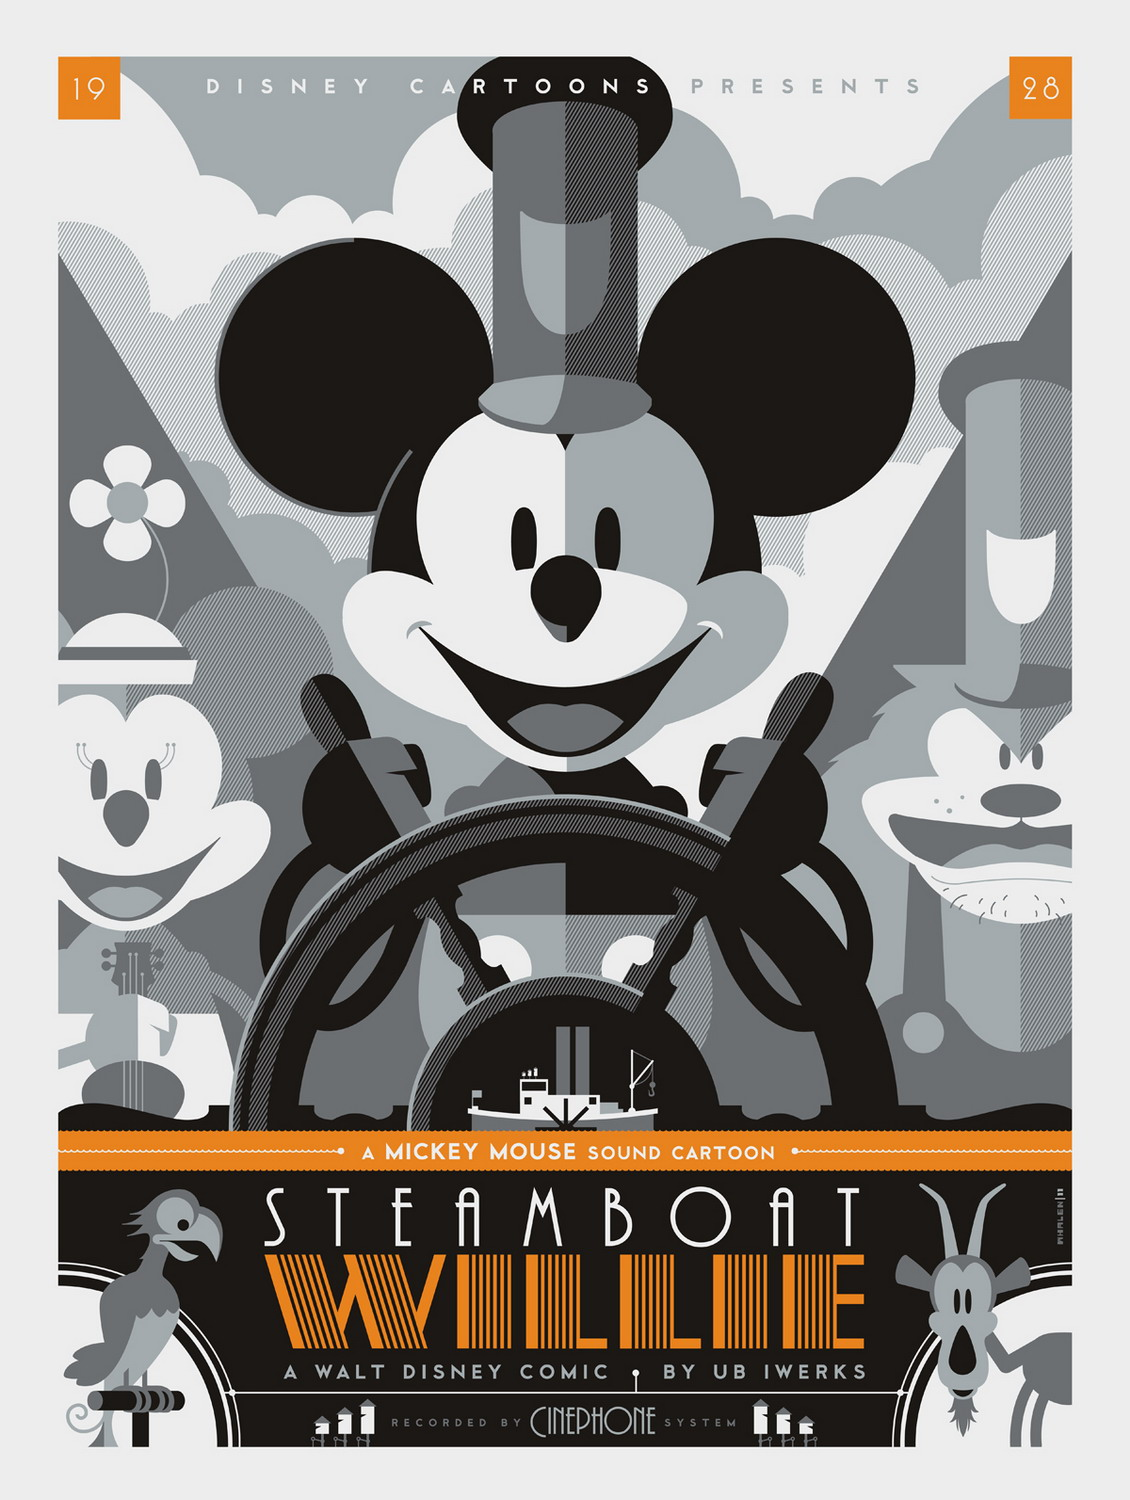 steamboat-willie-by-tom-whalen